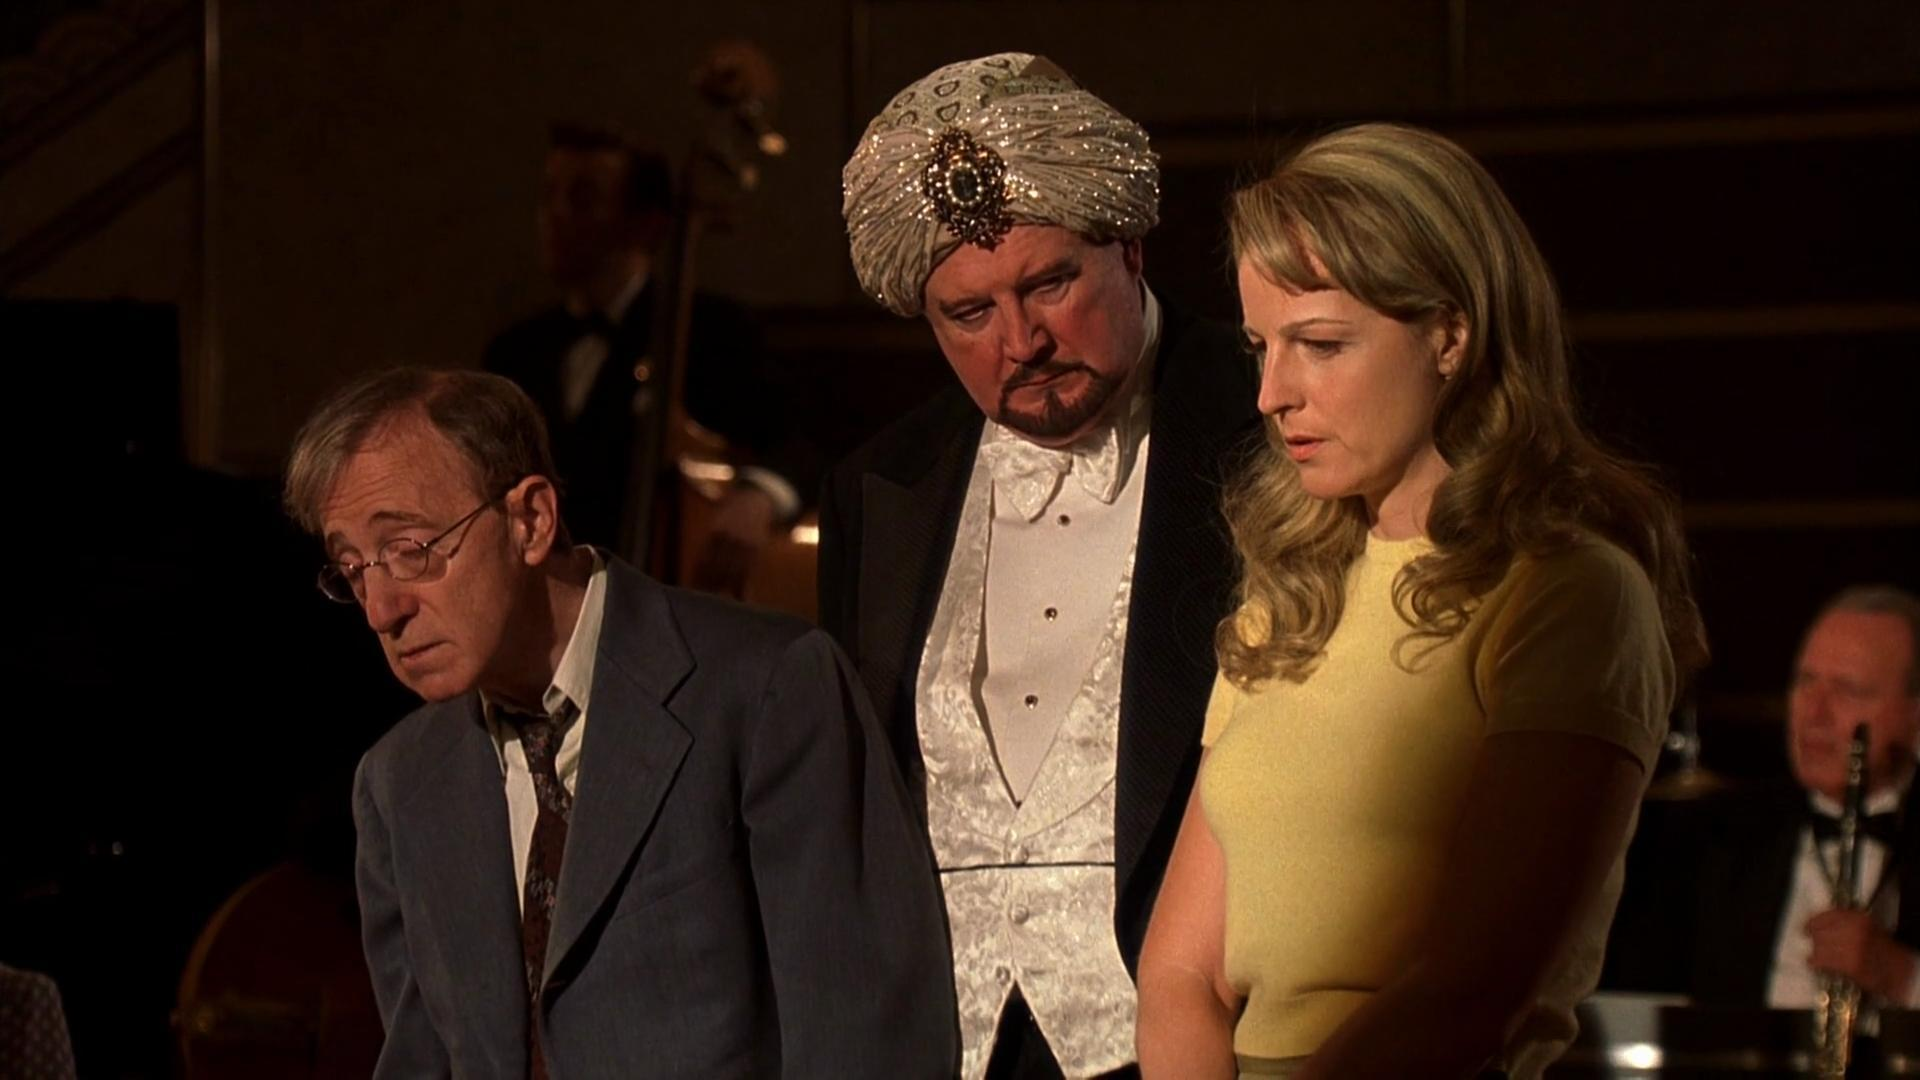 Woody Allen, Helen Hunt, and David Ogden Stiers in The Curse of the Jade Scorpion (2001)